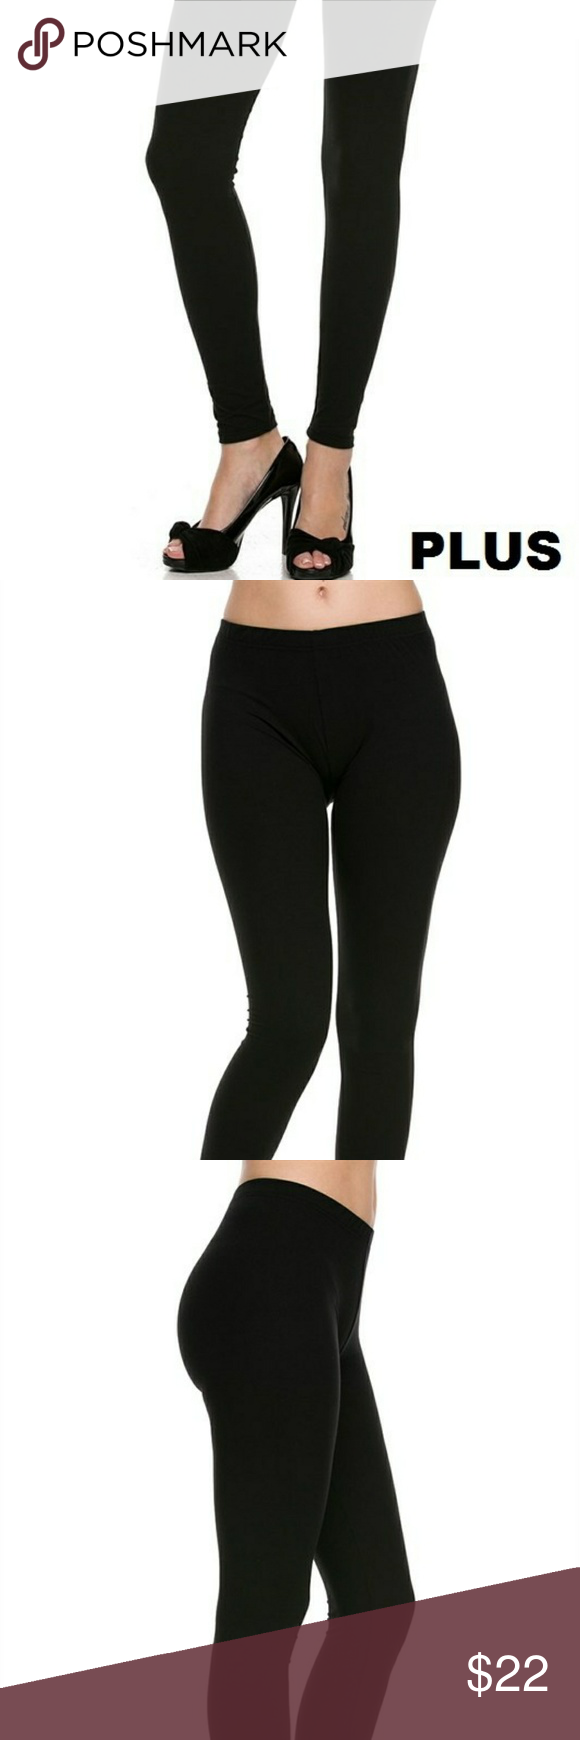 3f2a5d15a270a PLUS SIZE Black Brushed Knit Leggings 🎉 COMING PLUS: Brushed Floral Print  Ankle Leggings.